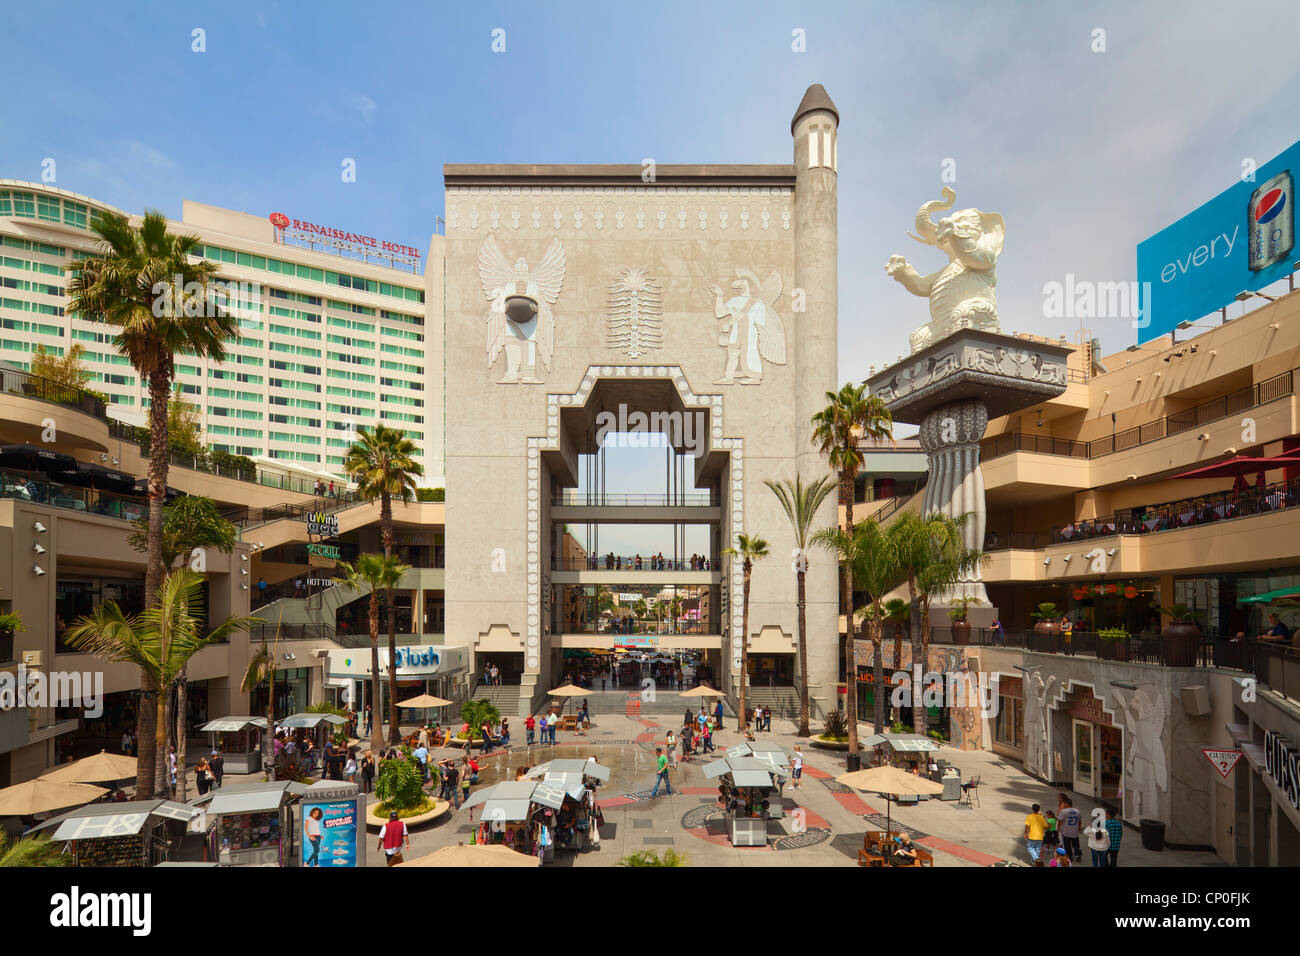 Kodak Theater, Hollywood, Los Angeles Photo Stock